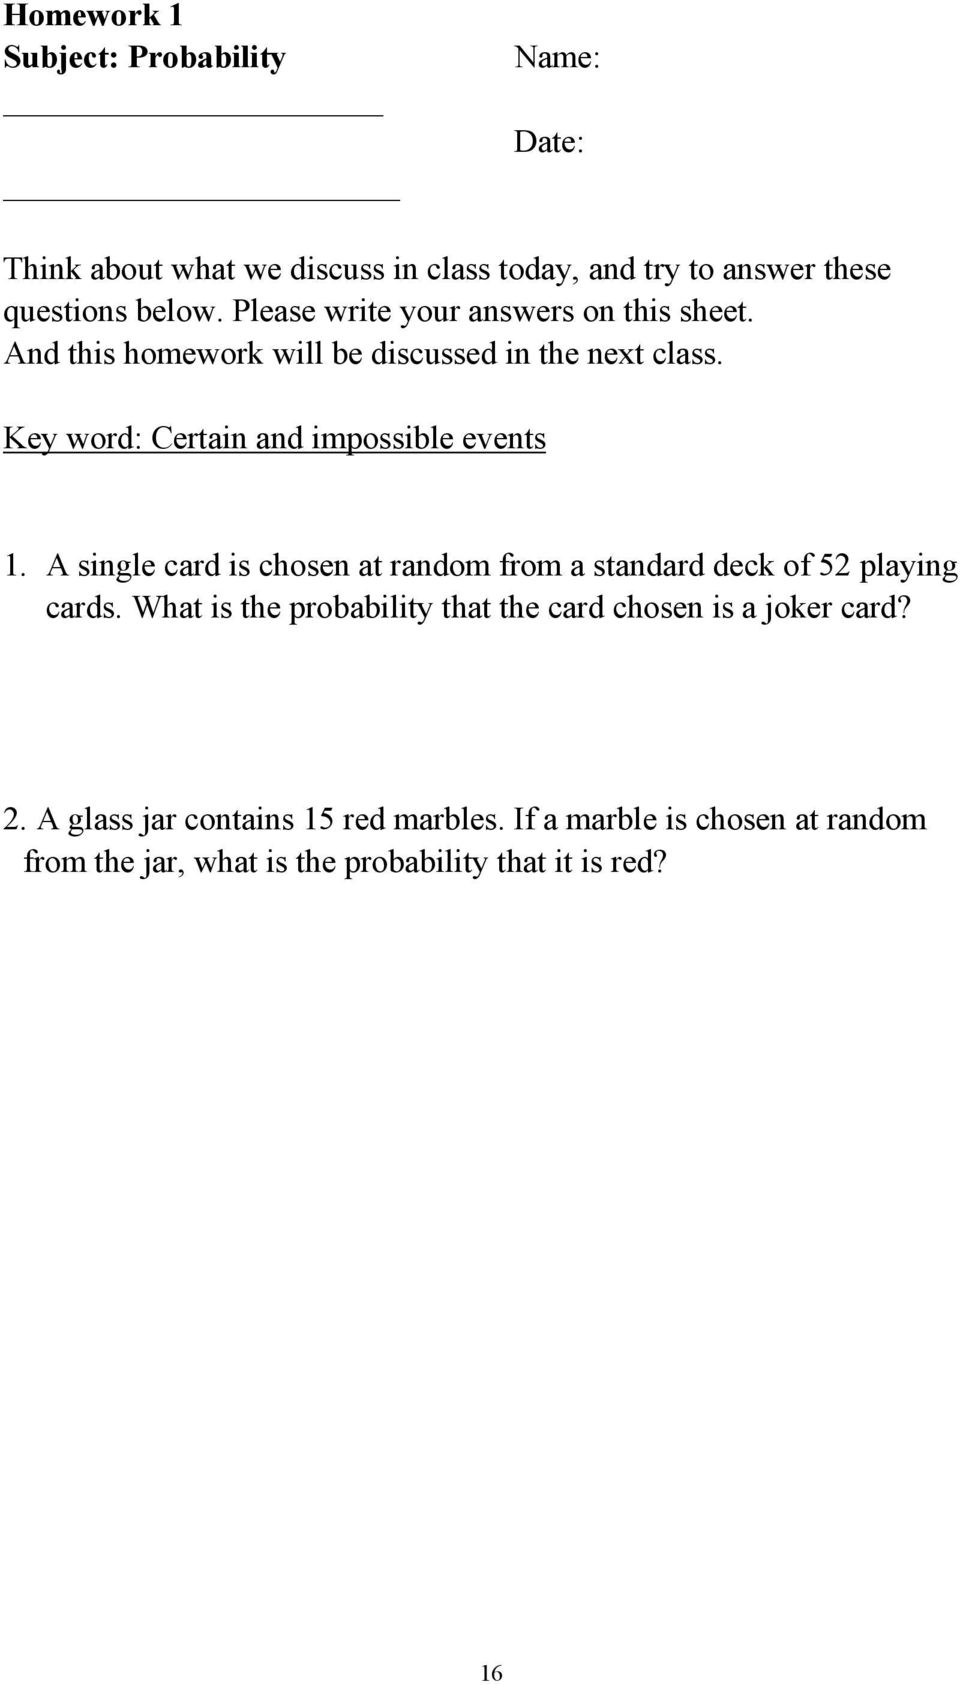 Key word: Certain and impossible events 1. A single card is chosen at random from a standard deck of 52 playing cards.